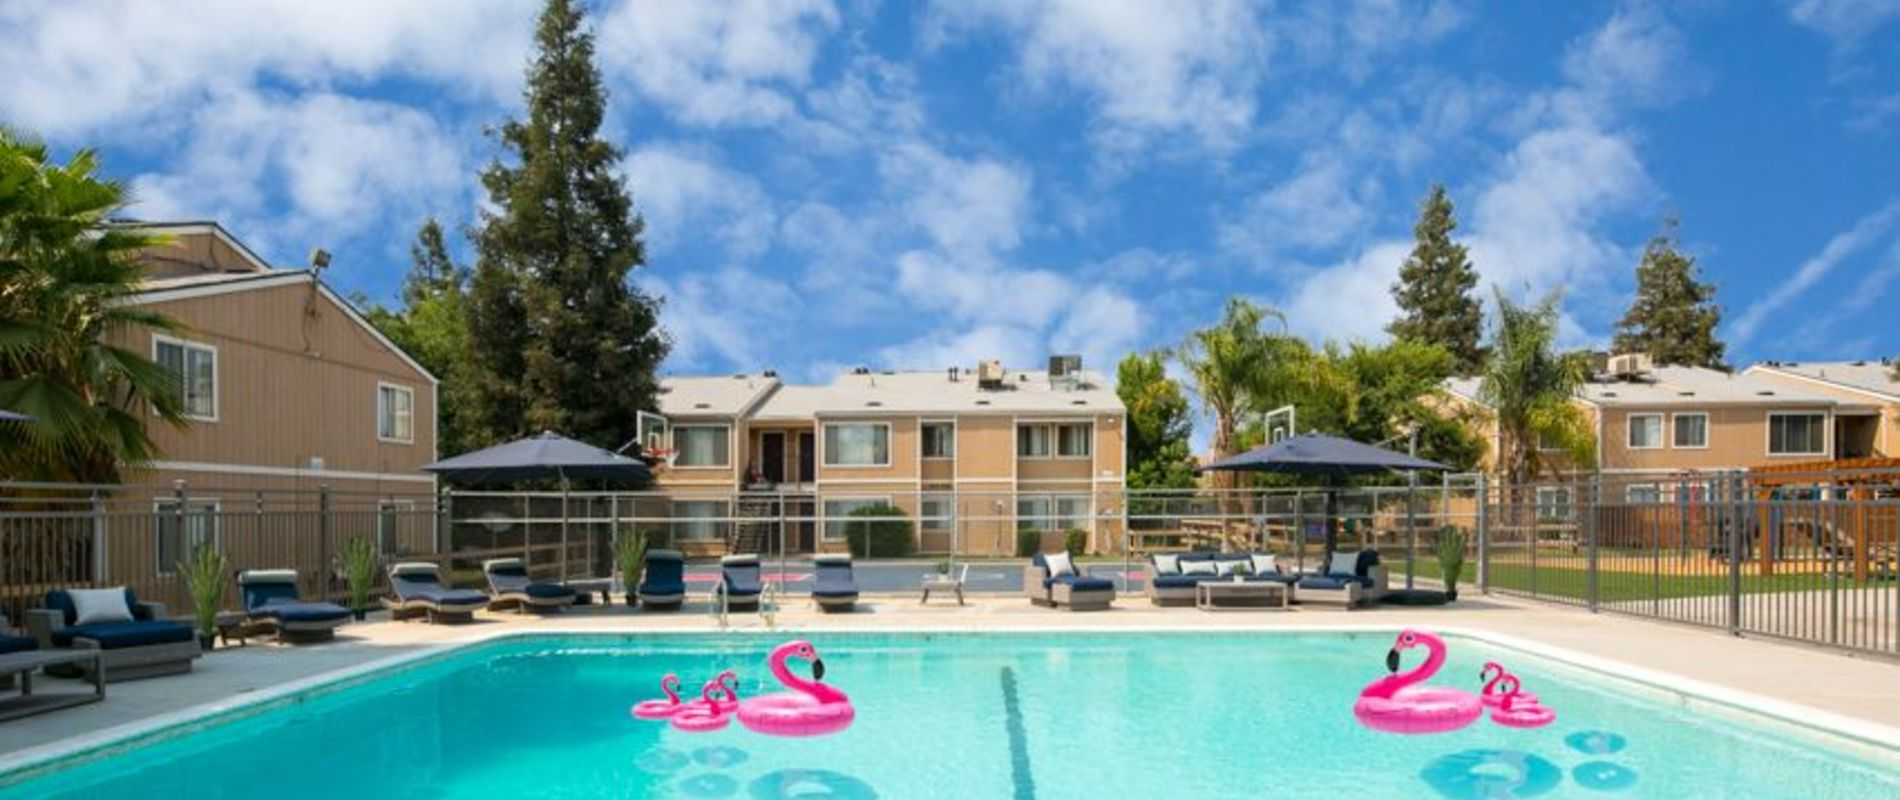 Apartments for Rent in Fresno, CA | Golden Gardens - Home